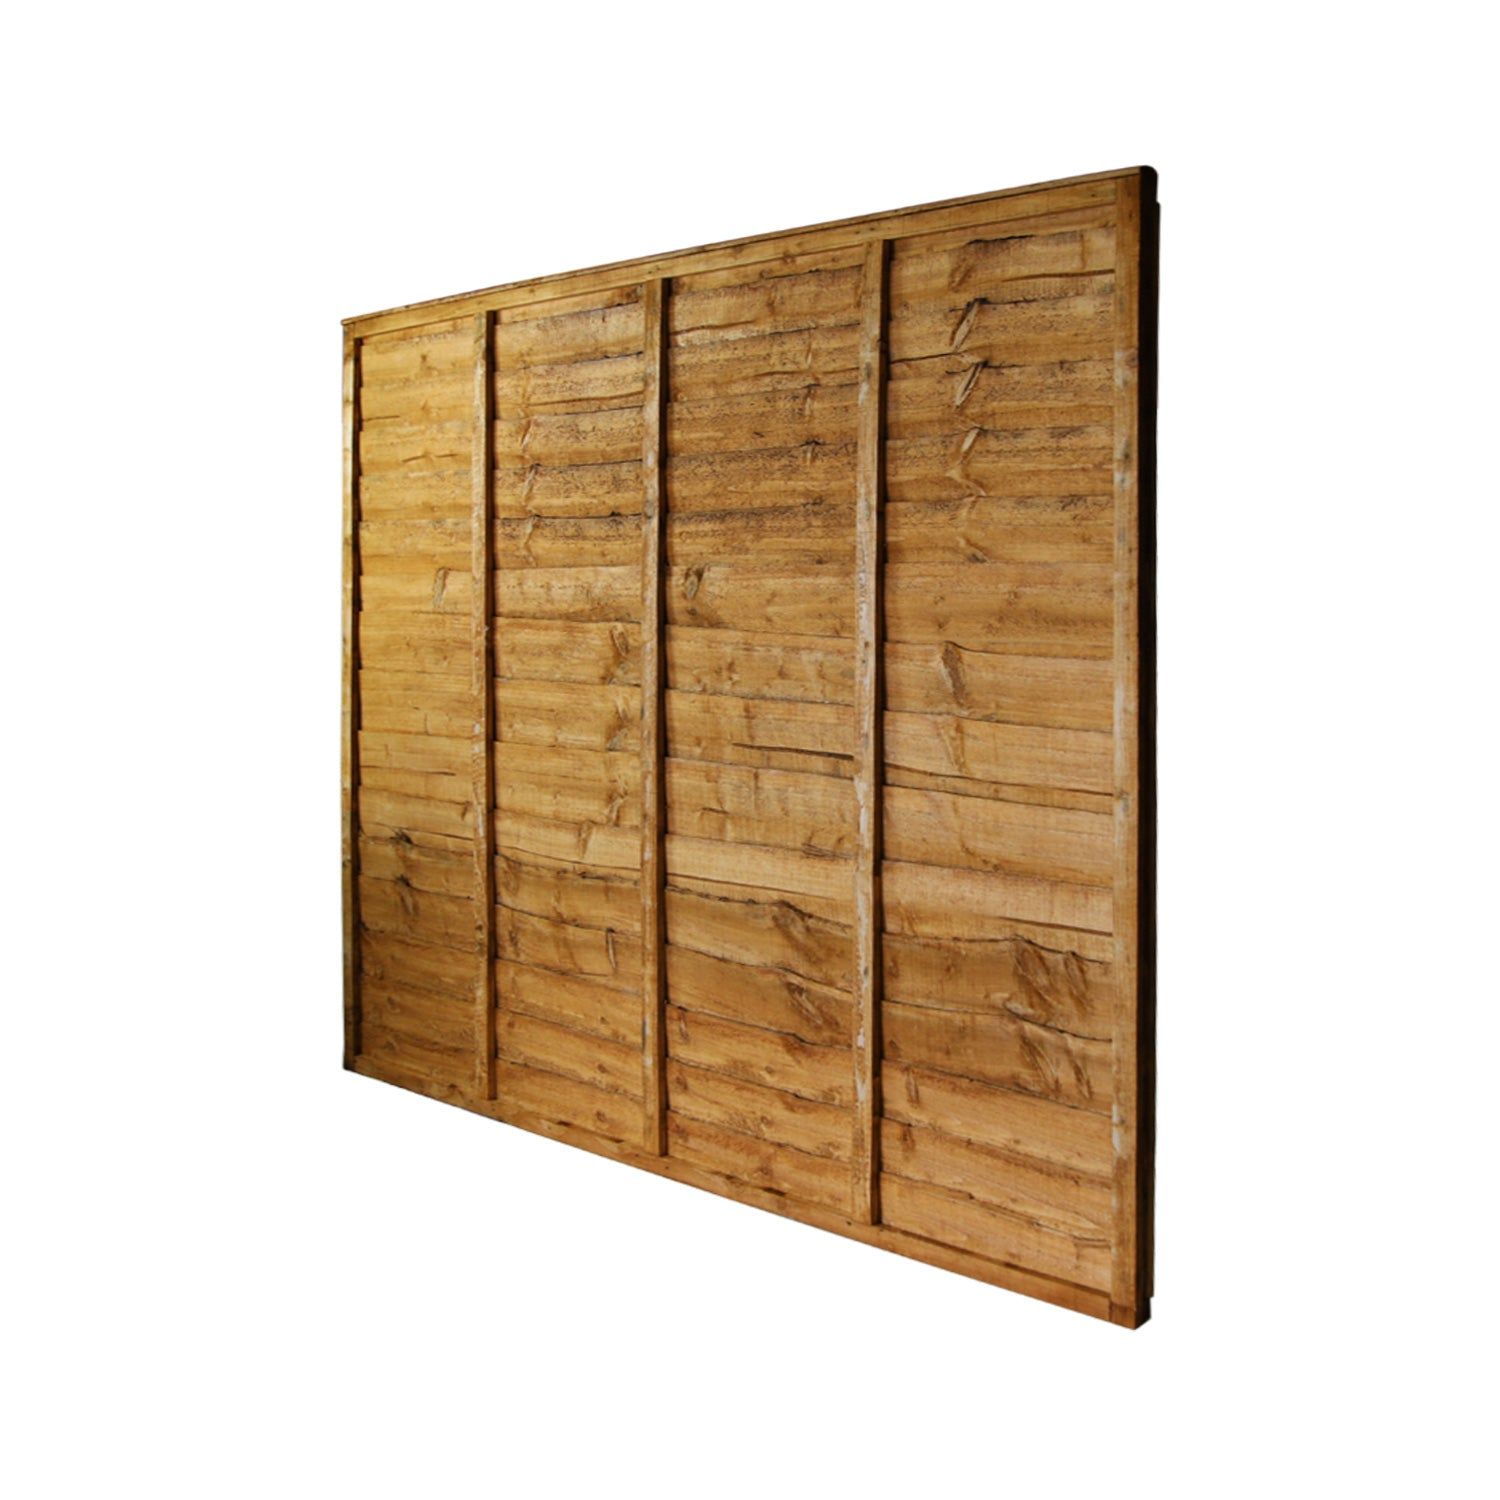 6' x 6' Waney Lap Fence Panel